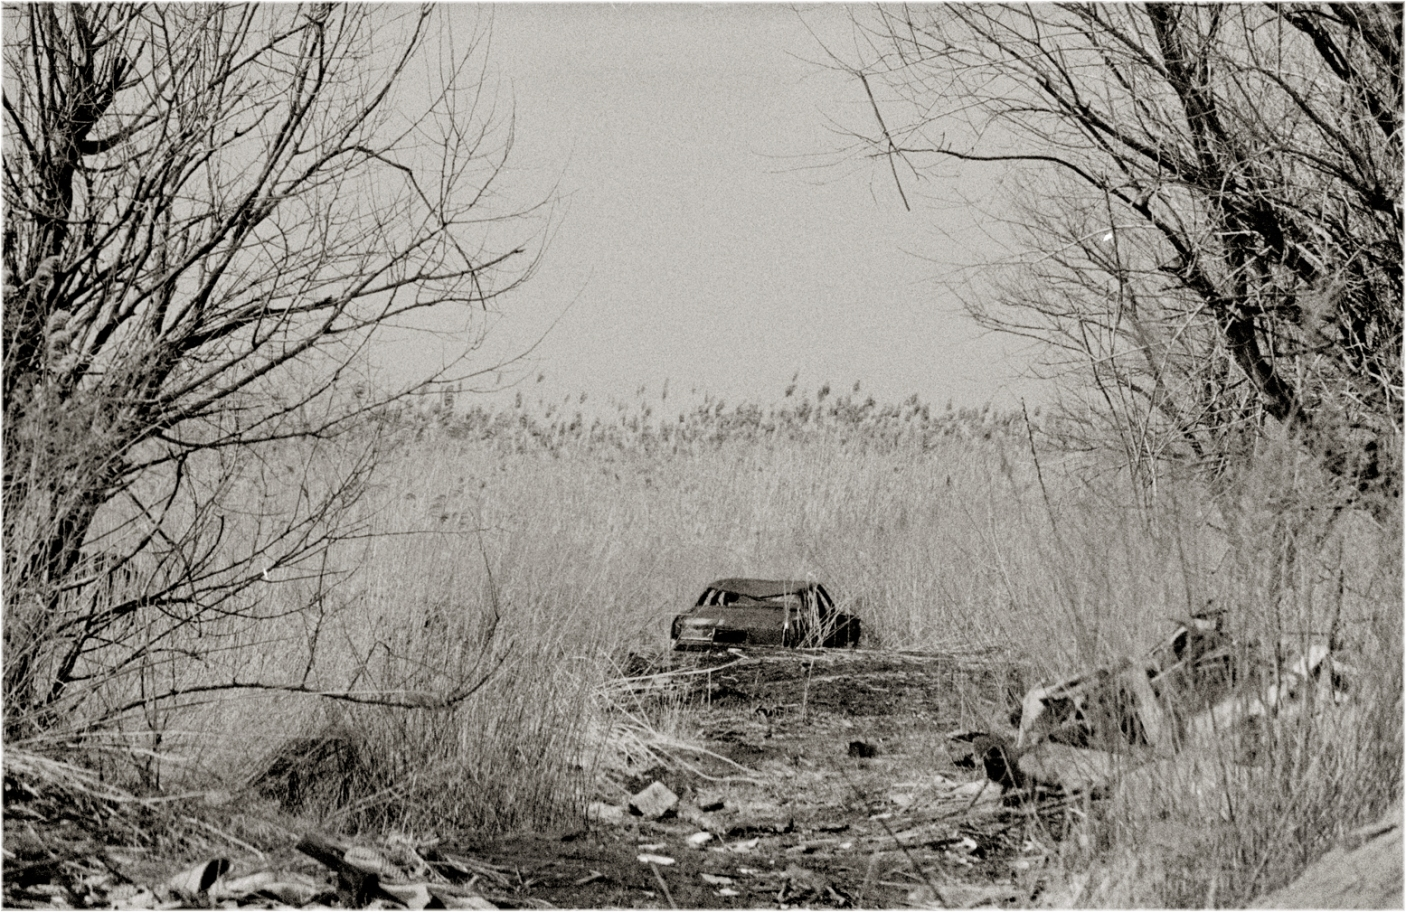 Wetlands-Wreck-1990 copy